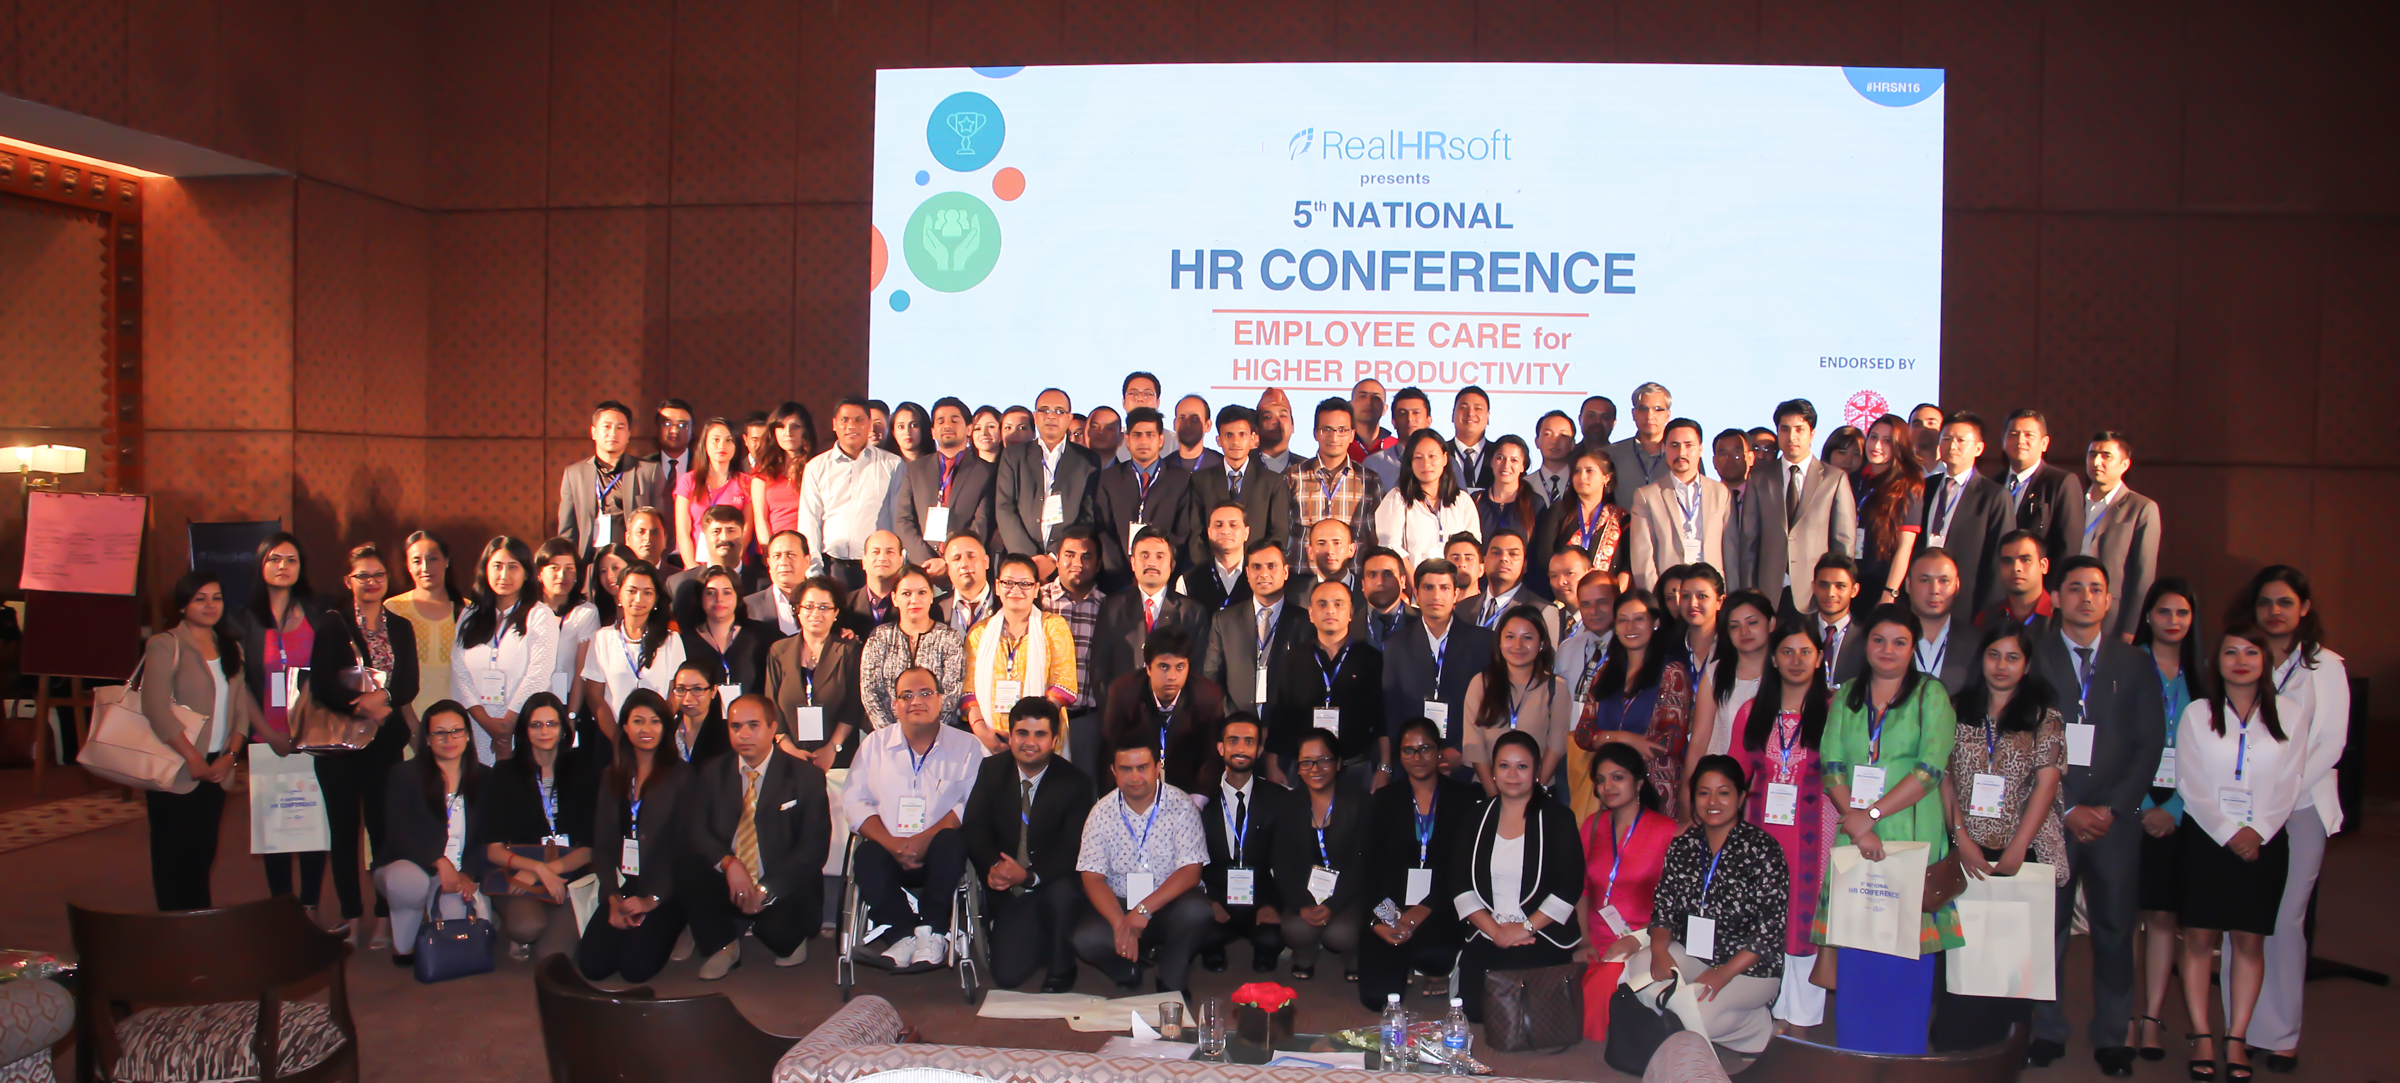 5th National HR Conference